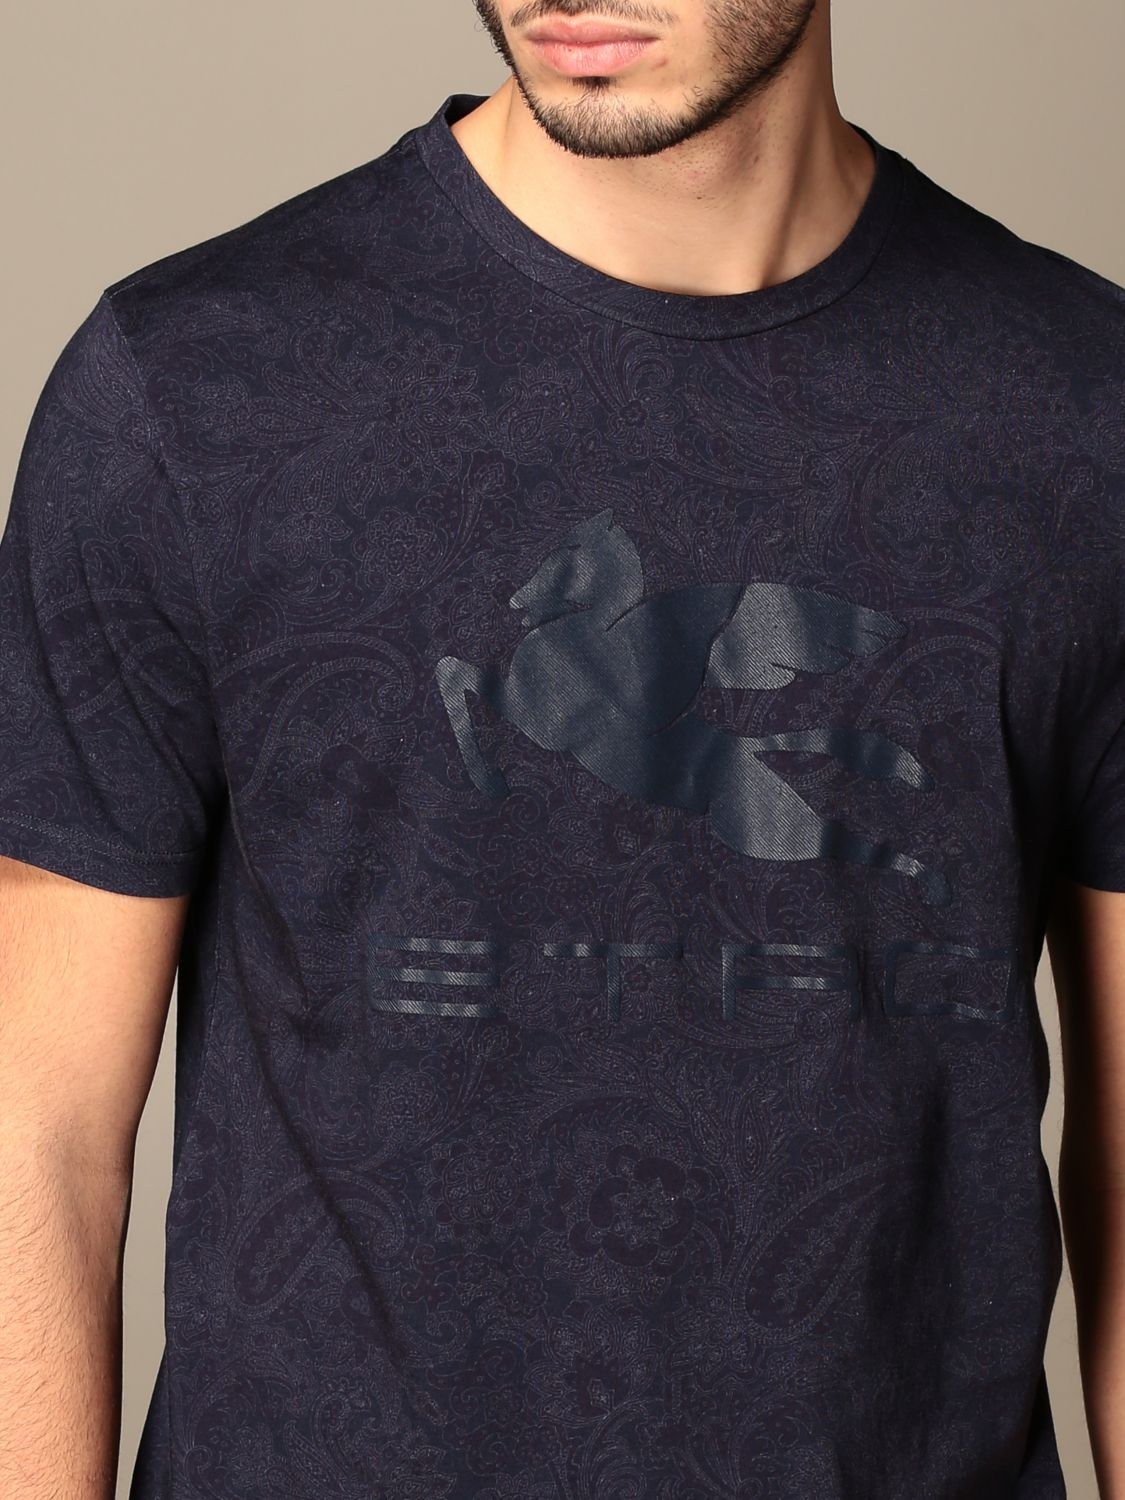 T-shirt Etro: Etro t-shirt in paisley patterned cotton with Pegasus gnawed blue 5